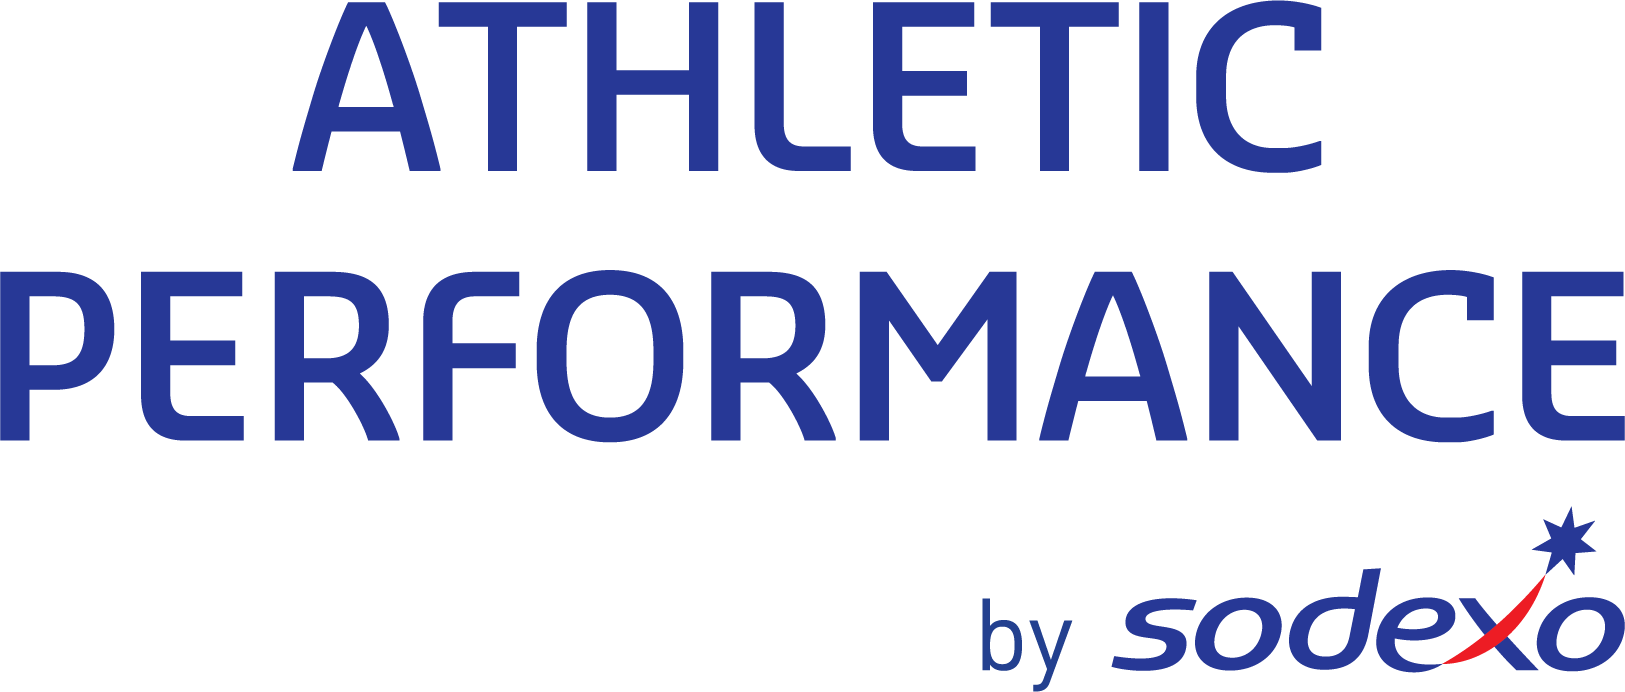 Athletic_Perf_logo.png